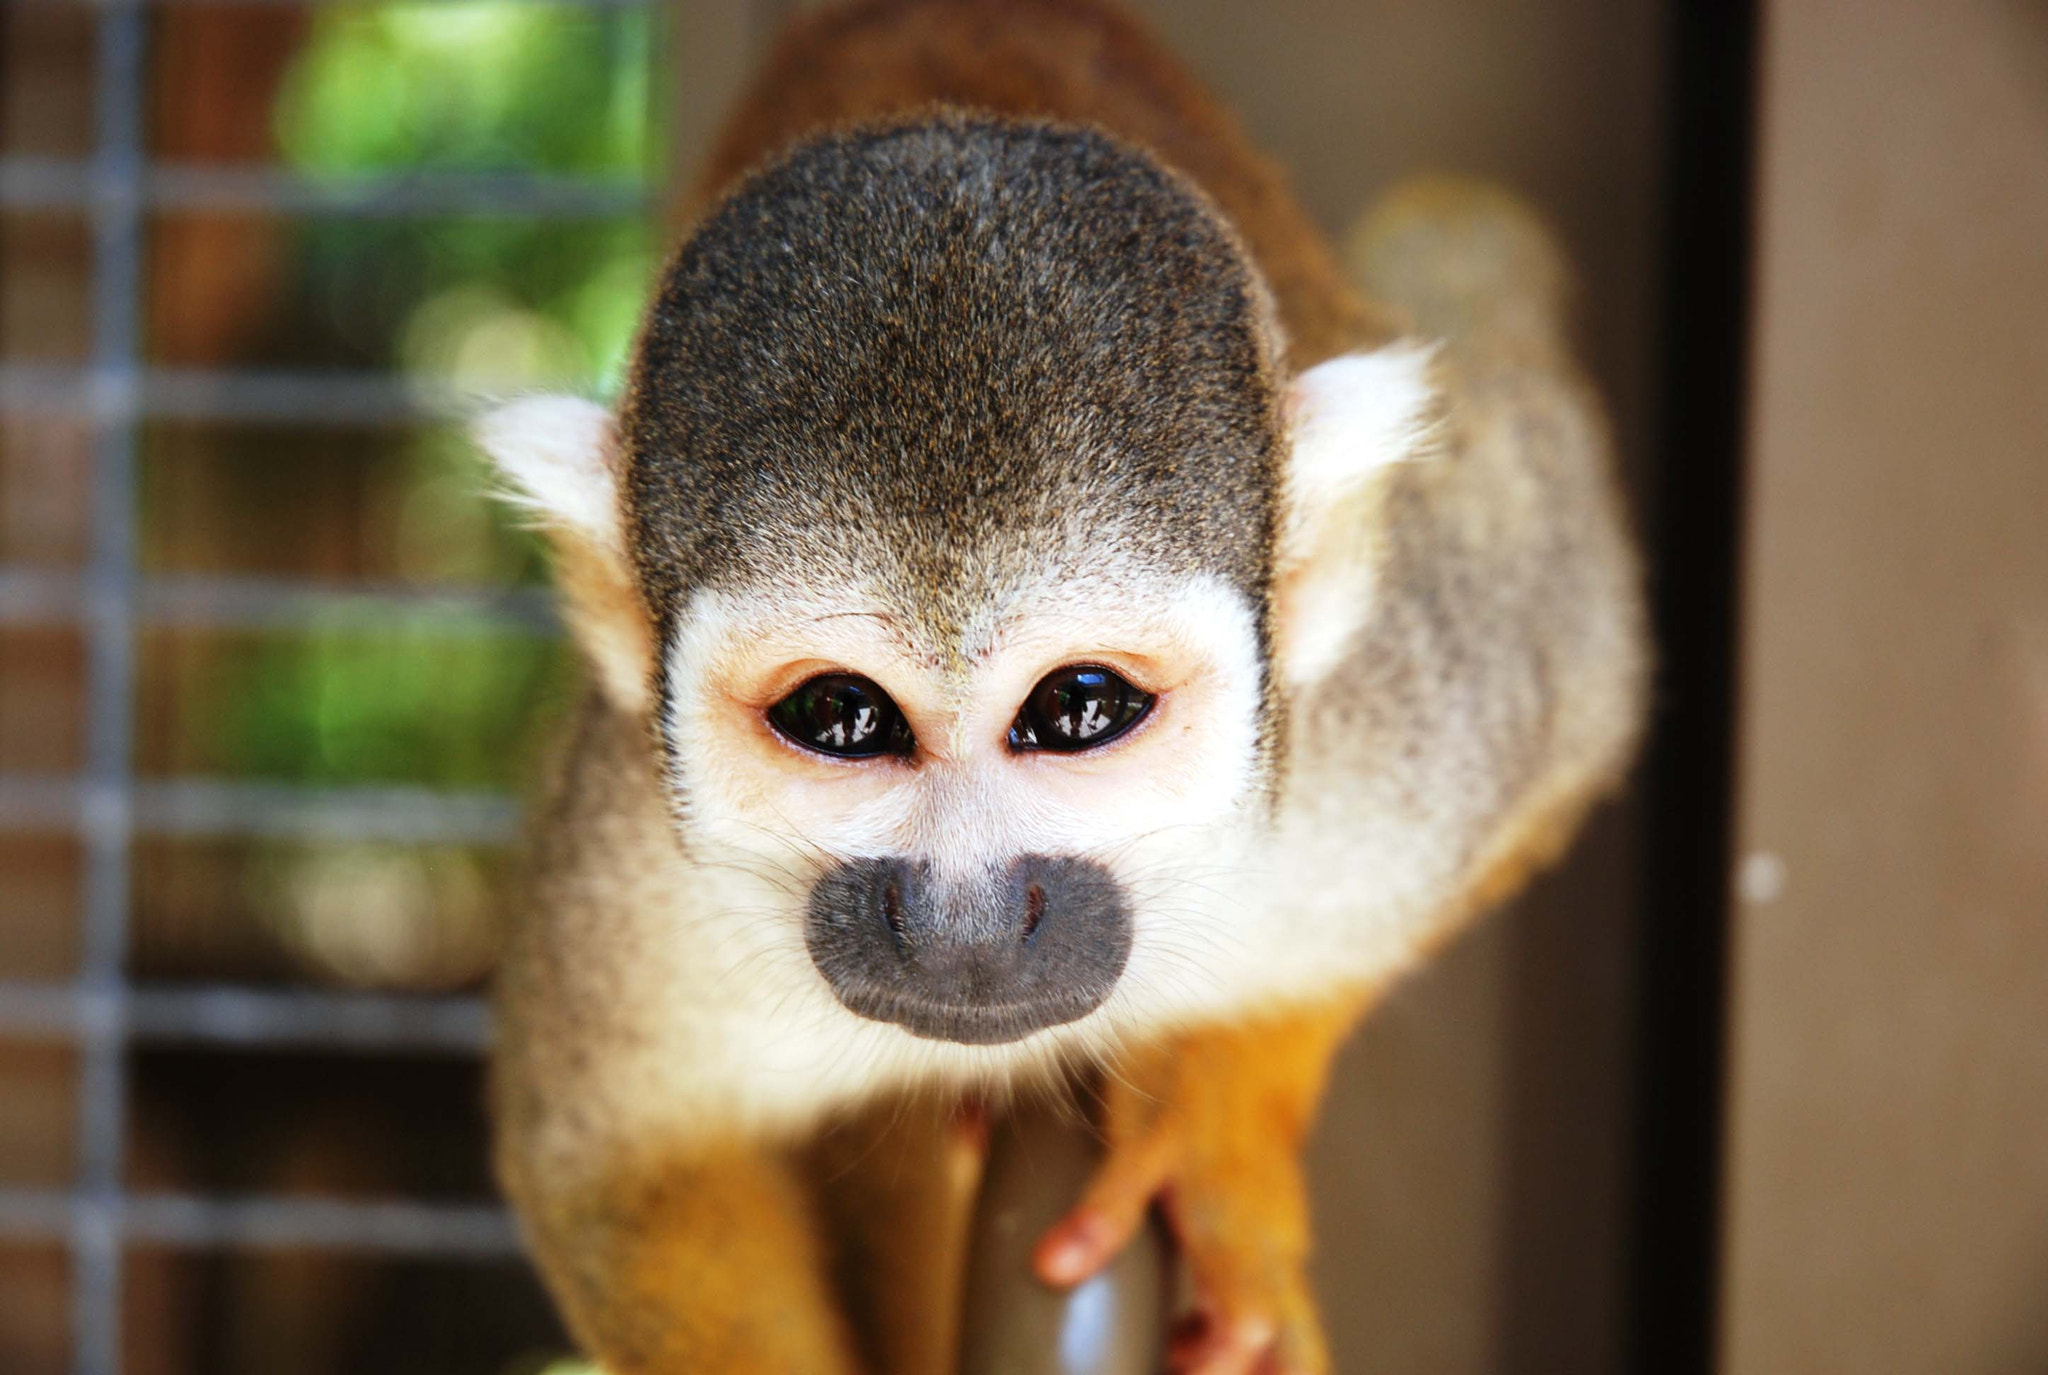 Photograph The monkey by Patricia Vandal on 500px